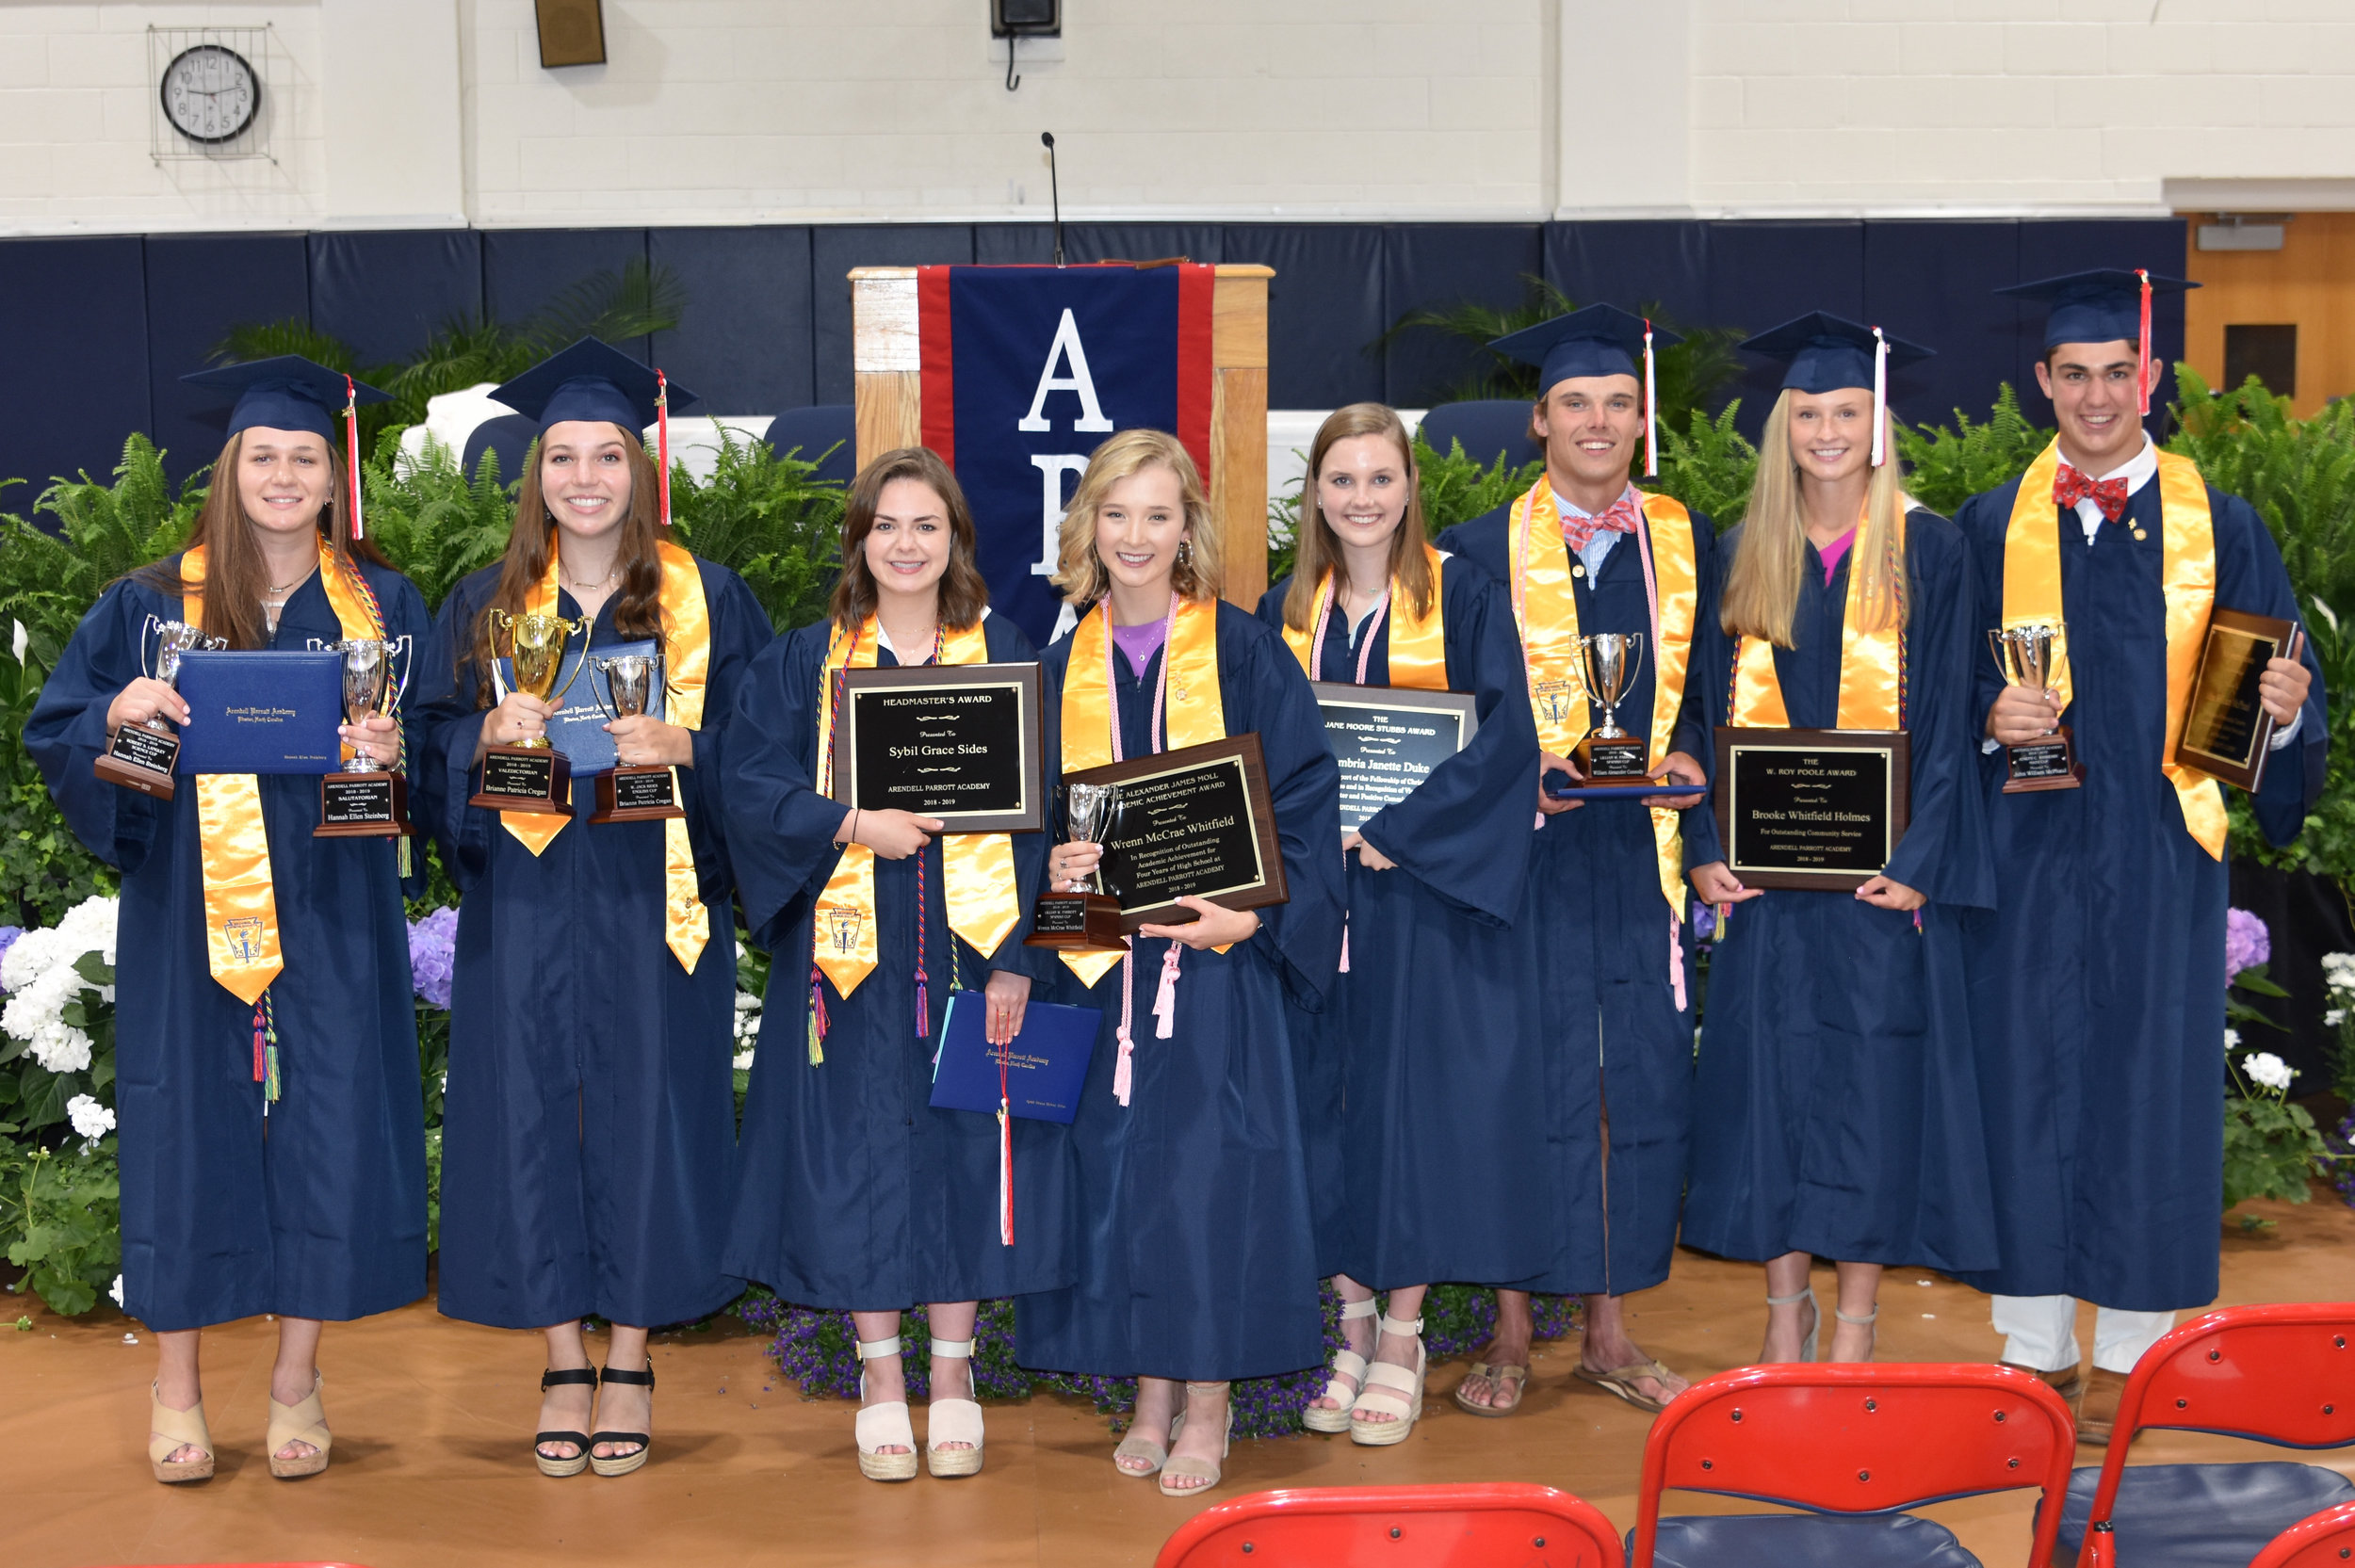 Parrott Academy graduation award winners (left to right) Hannah Steinberg, Brianne Cregan, Sybil Sides, William McPhaul, Cambria Duke, Will Connolly, Brooke Holmes, and William McPhaul.